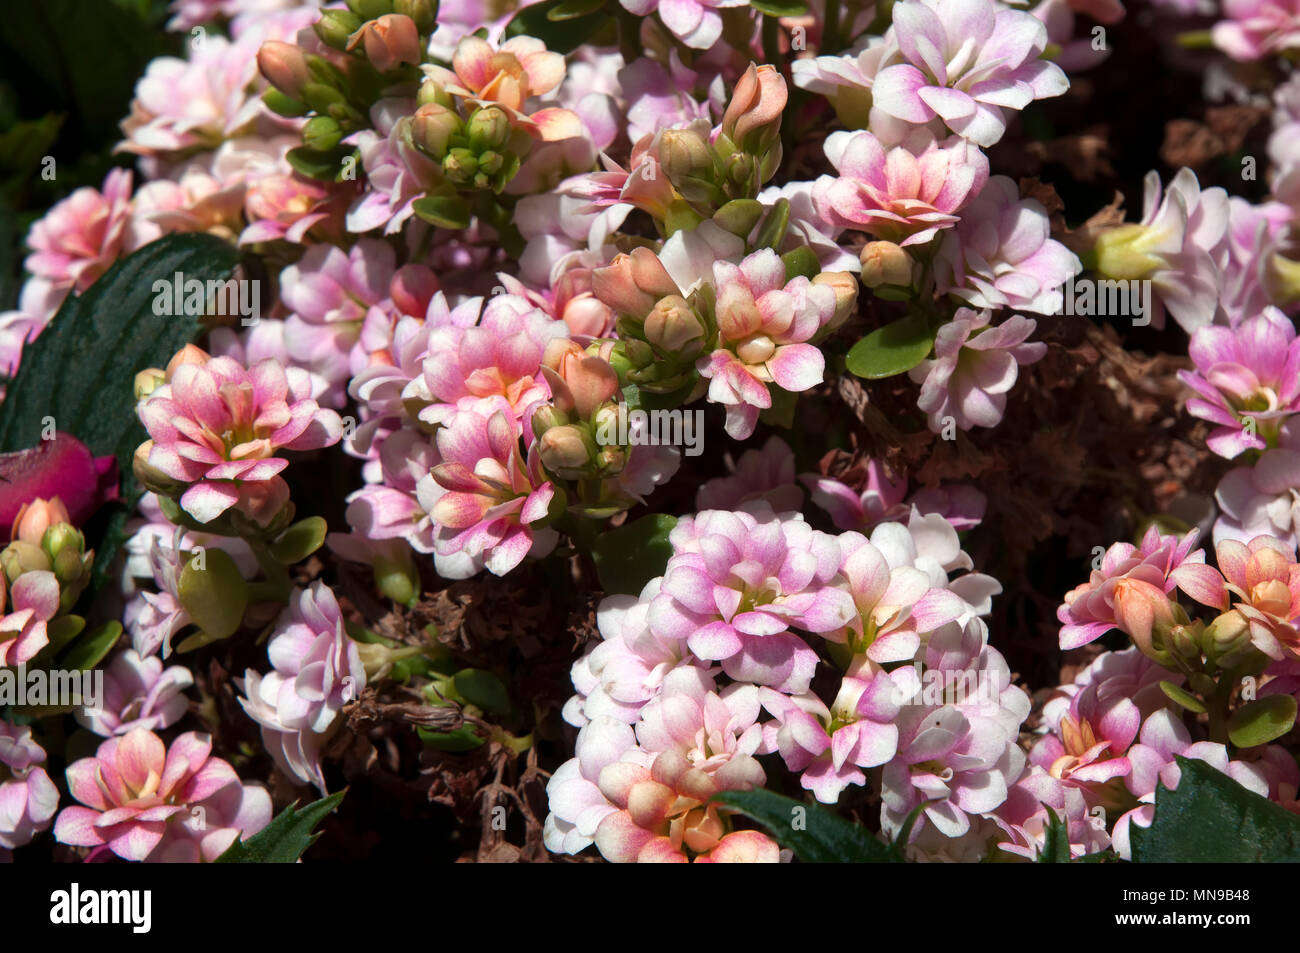 Pink Flowers Australia Sydney Australia Shrub With Small Pink Flowers Stock Photo